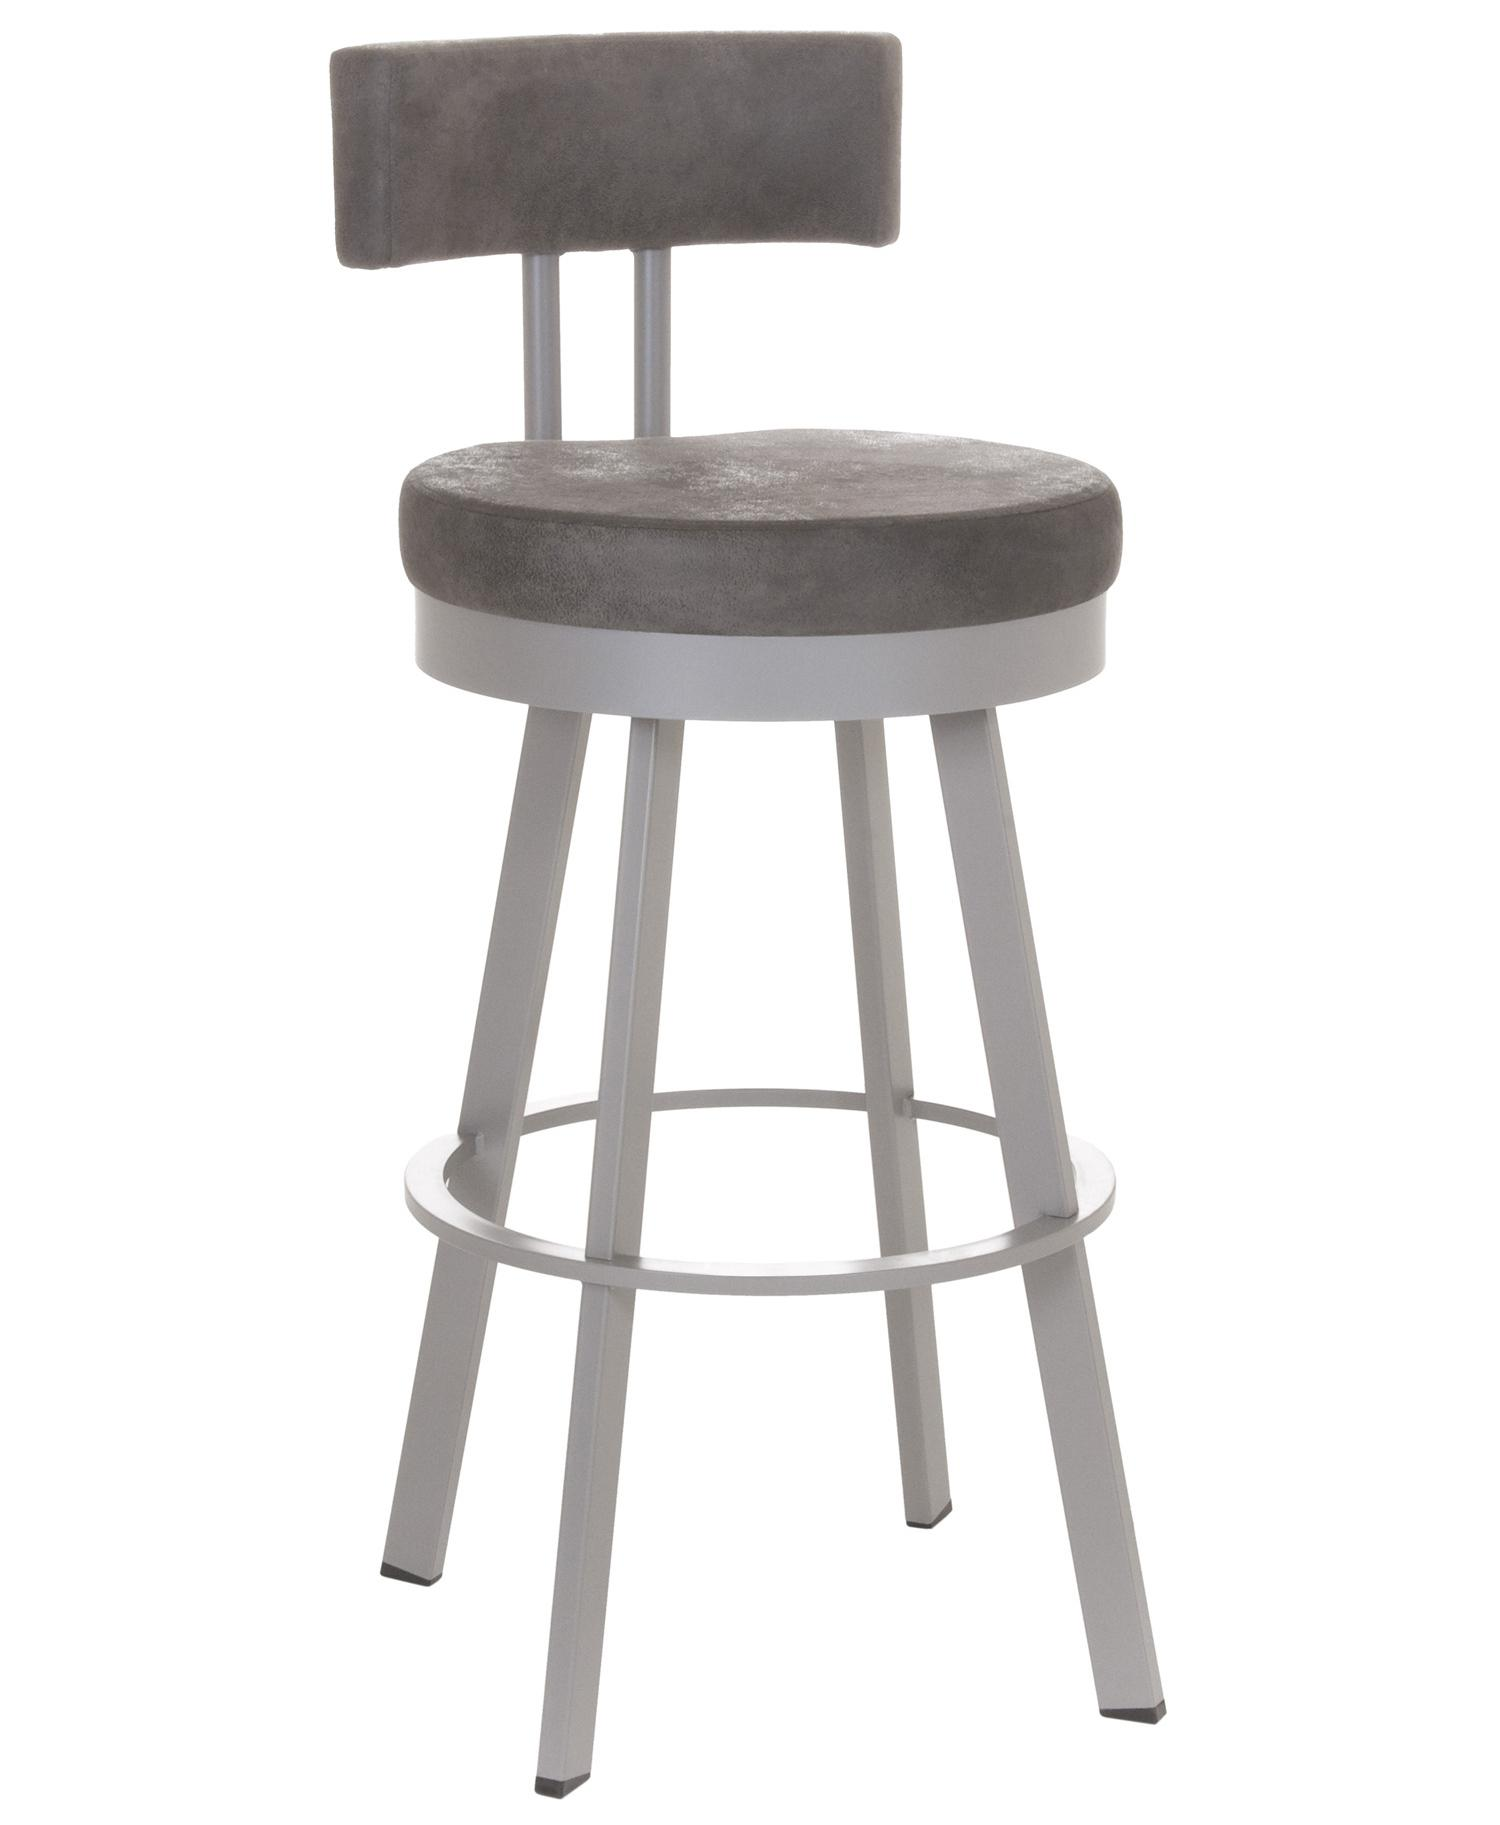 Amisco Urban 41445 30 Customizable 30 Barry Swivel Bar Stool O Dunk O Bright Furniture Bar Stools